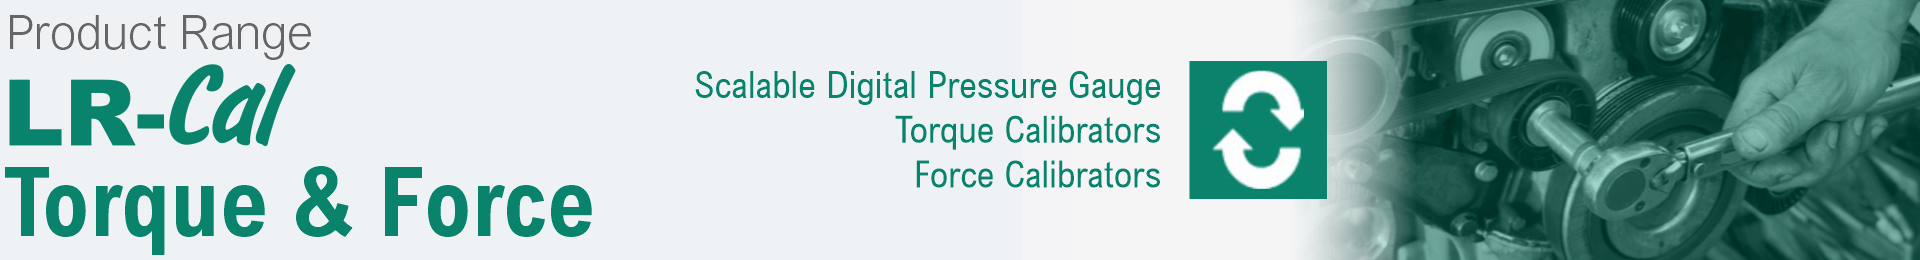 Product range Torque and Force Calibration